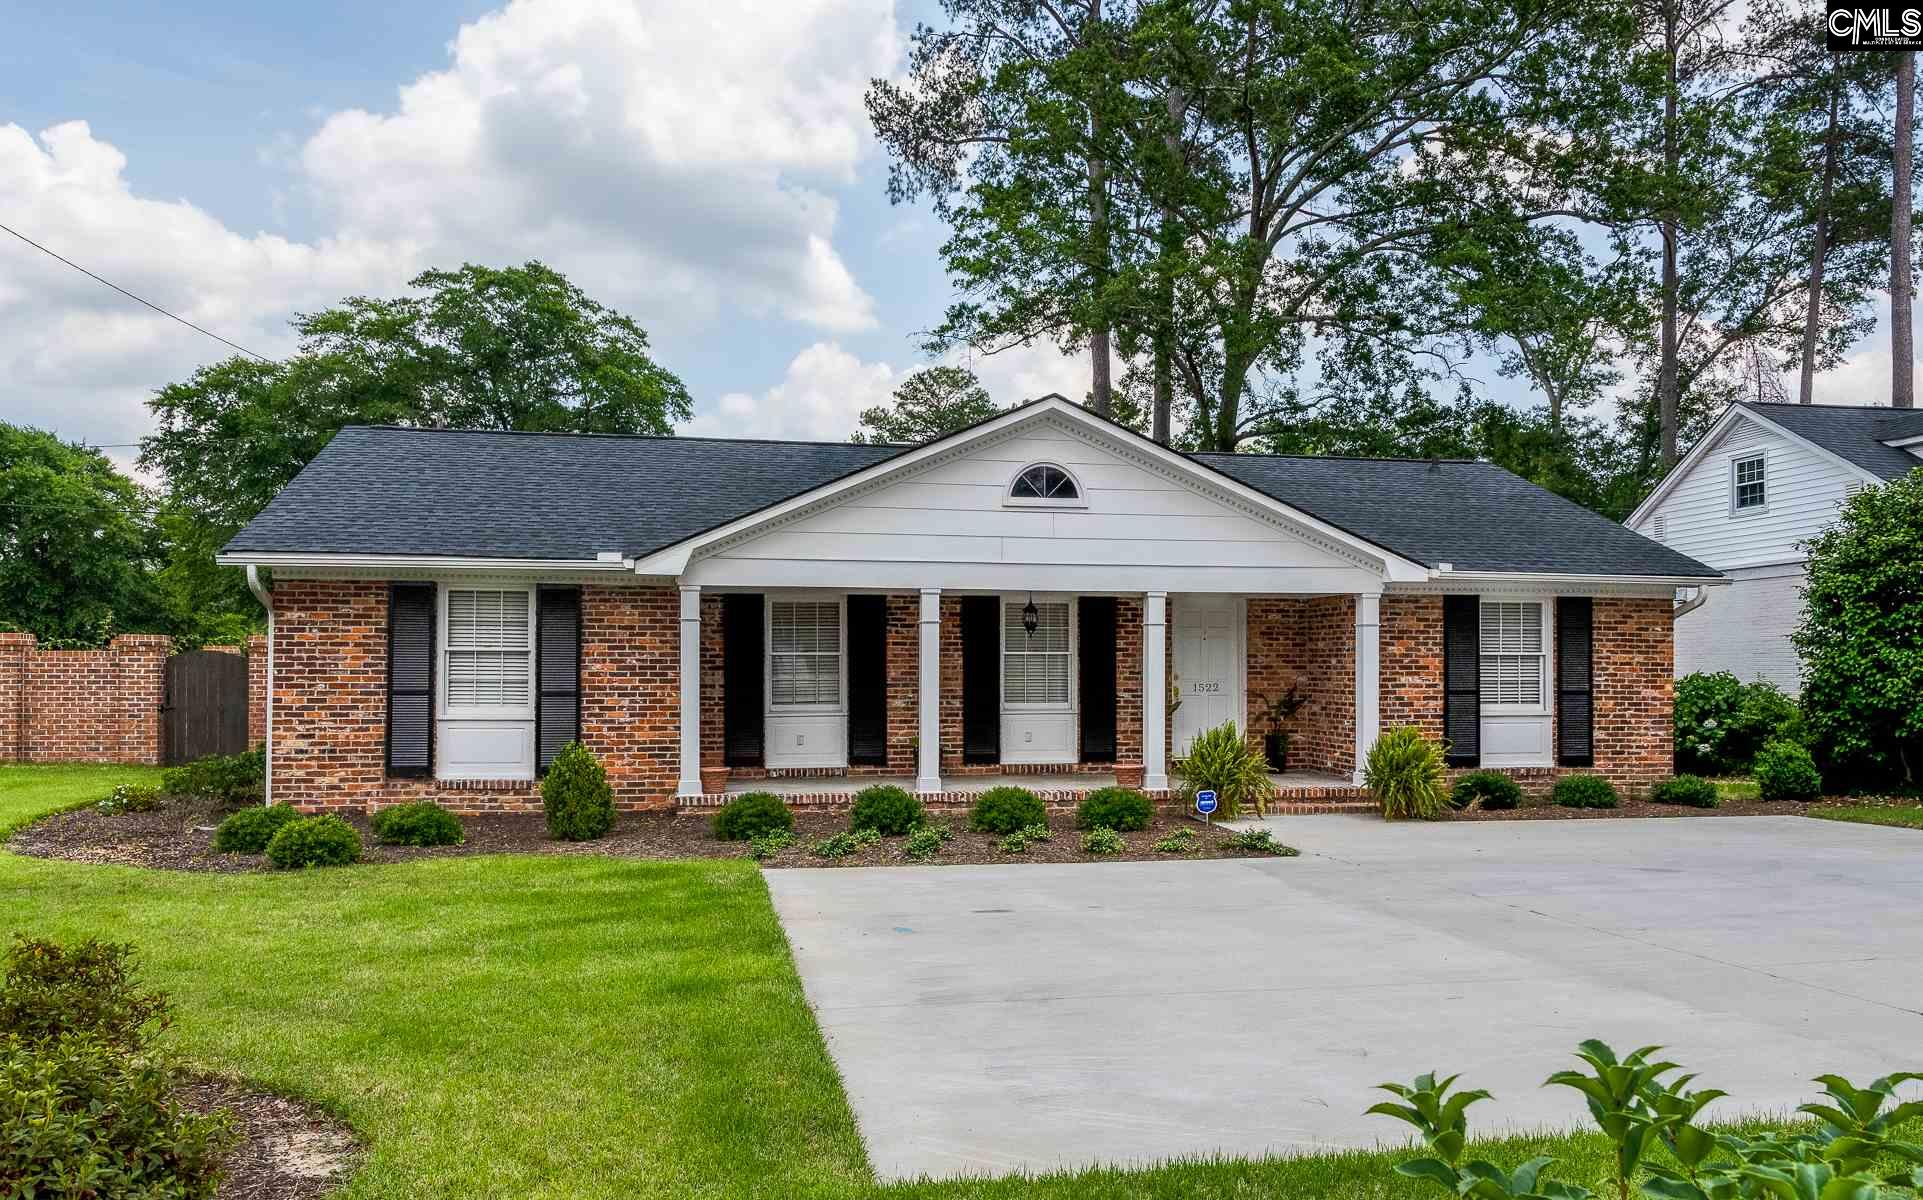 1522 Medway Columbia, SC 29205